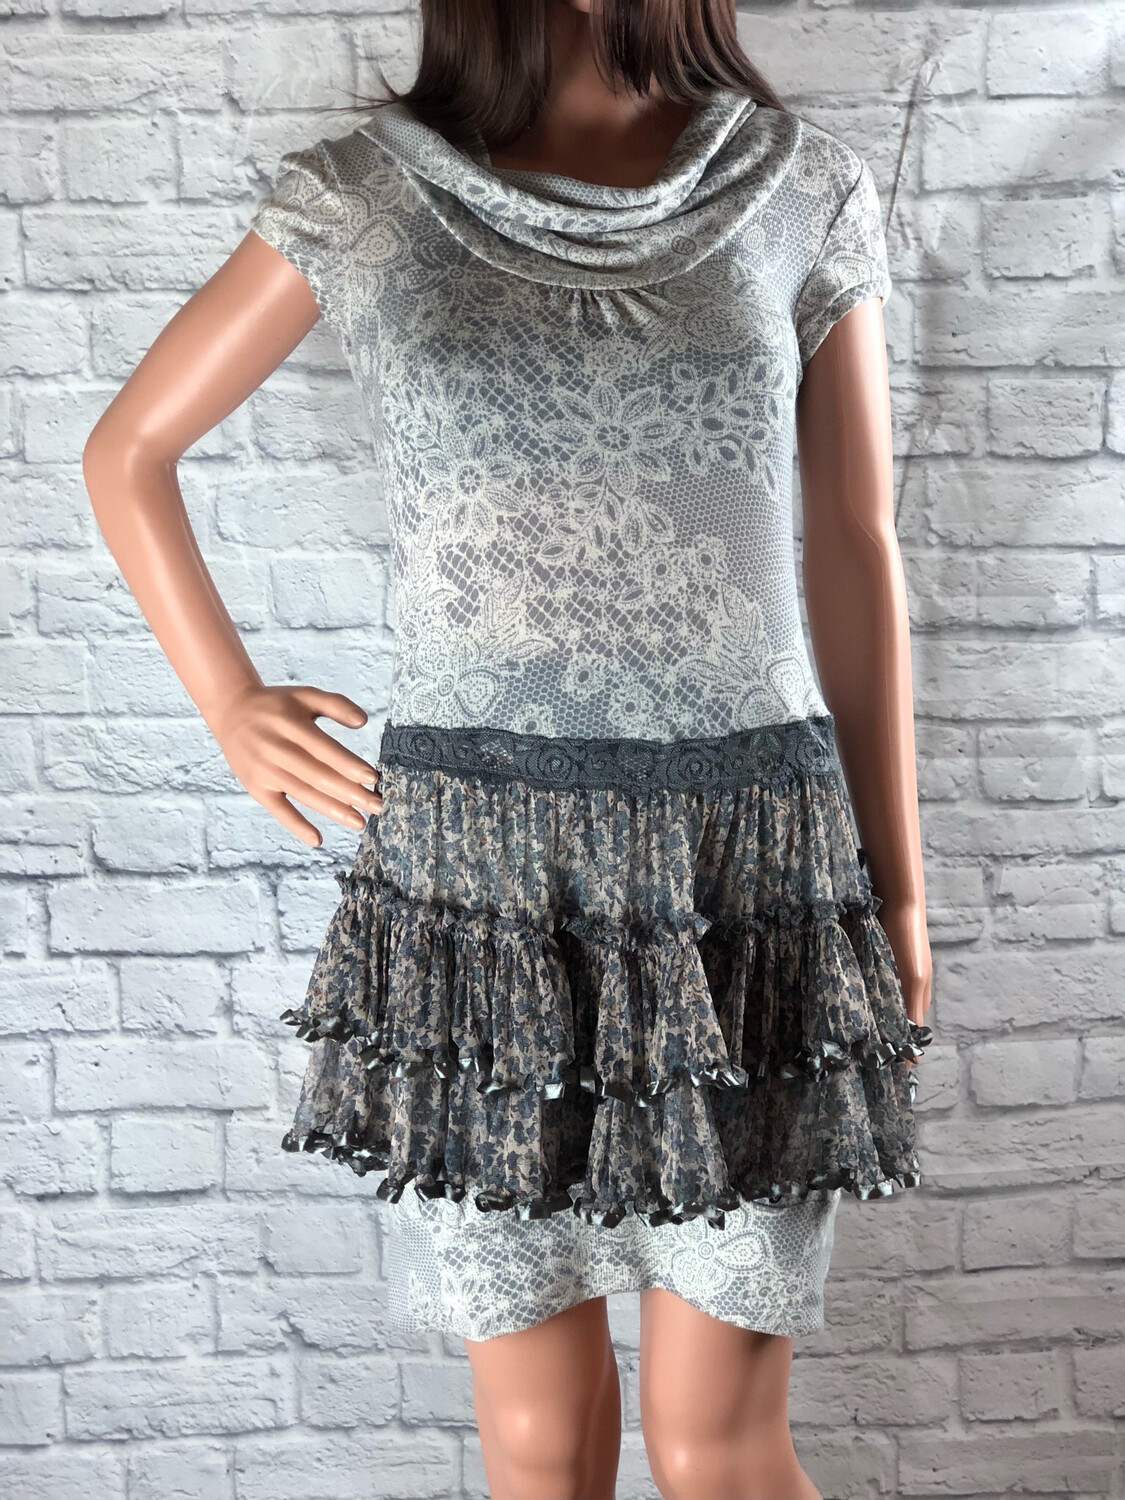 S Threads Upcycled Dress Tube Dress Cowl Neck W Lace Print And Ruffle Ribbon Skirt Size S/M/L